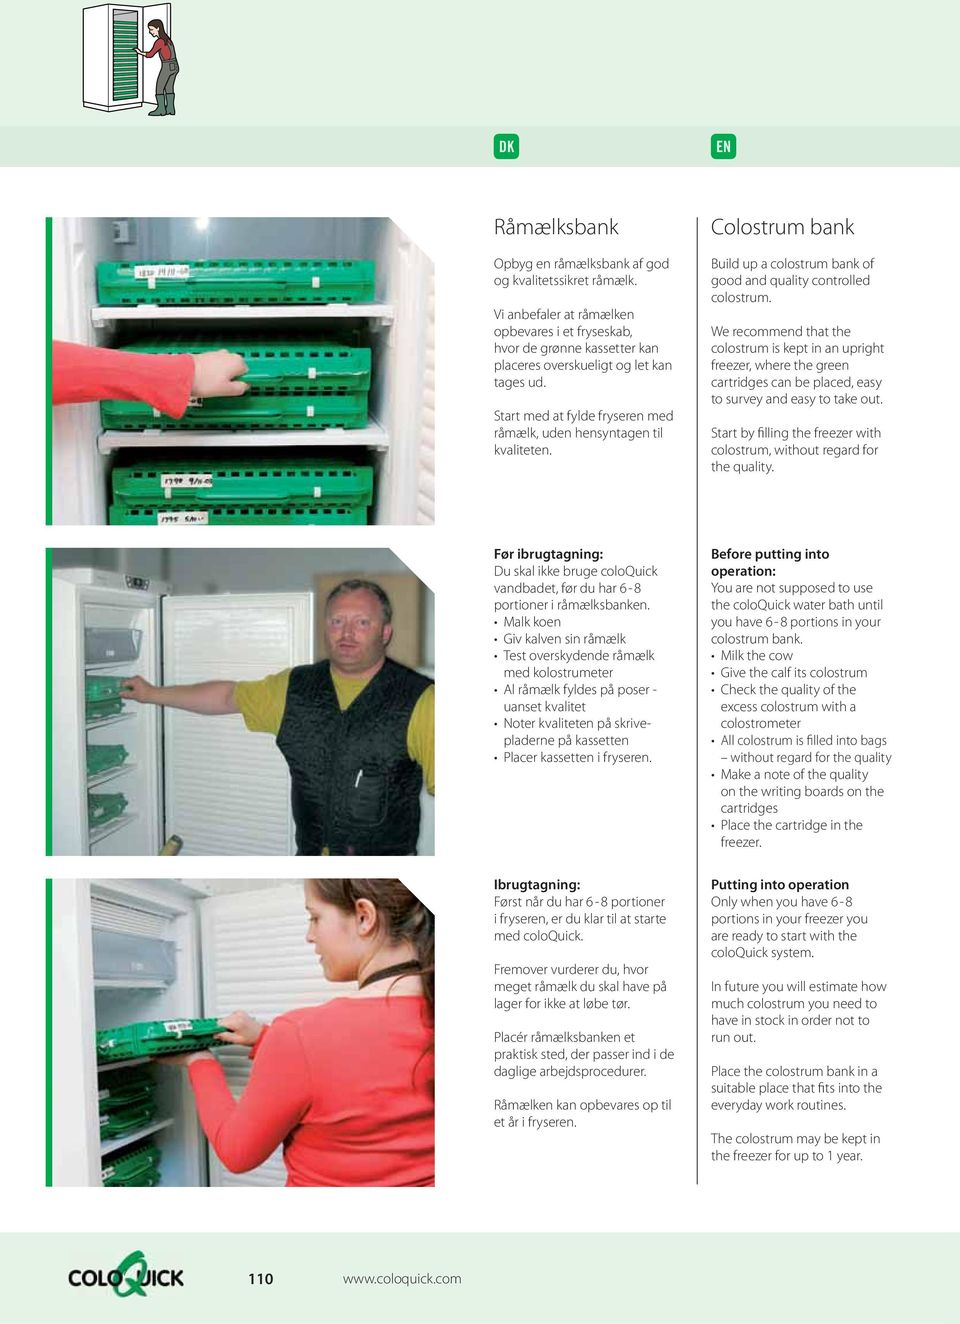 We recommend that the colostrum is kept in an upright freezer, where the green cartridges can be placed, easy to survey and easy to take out.